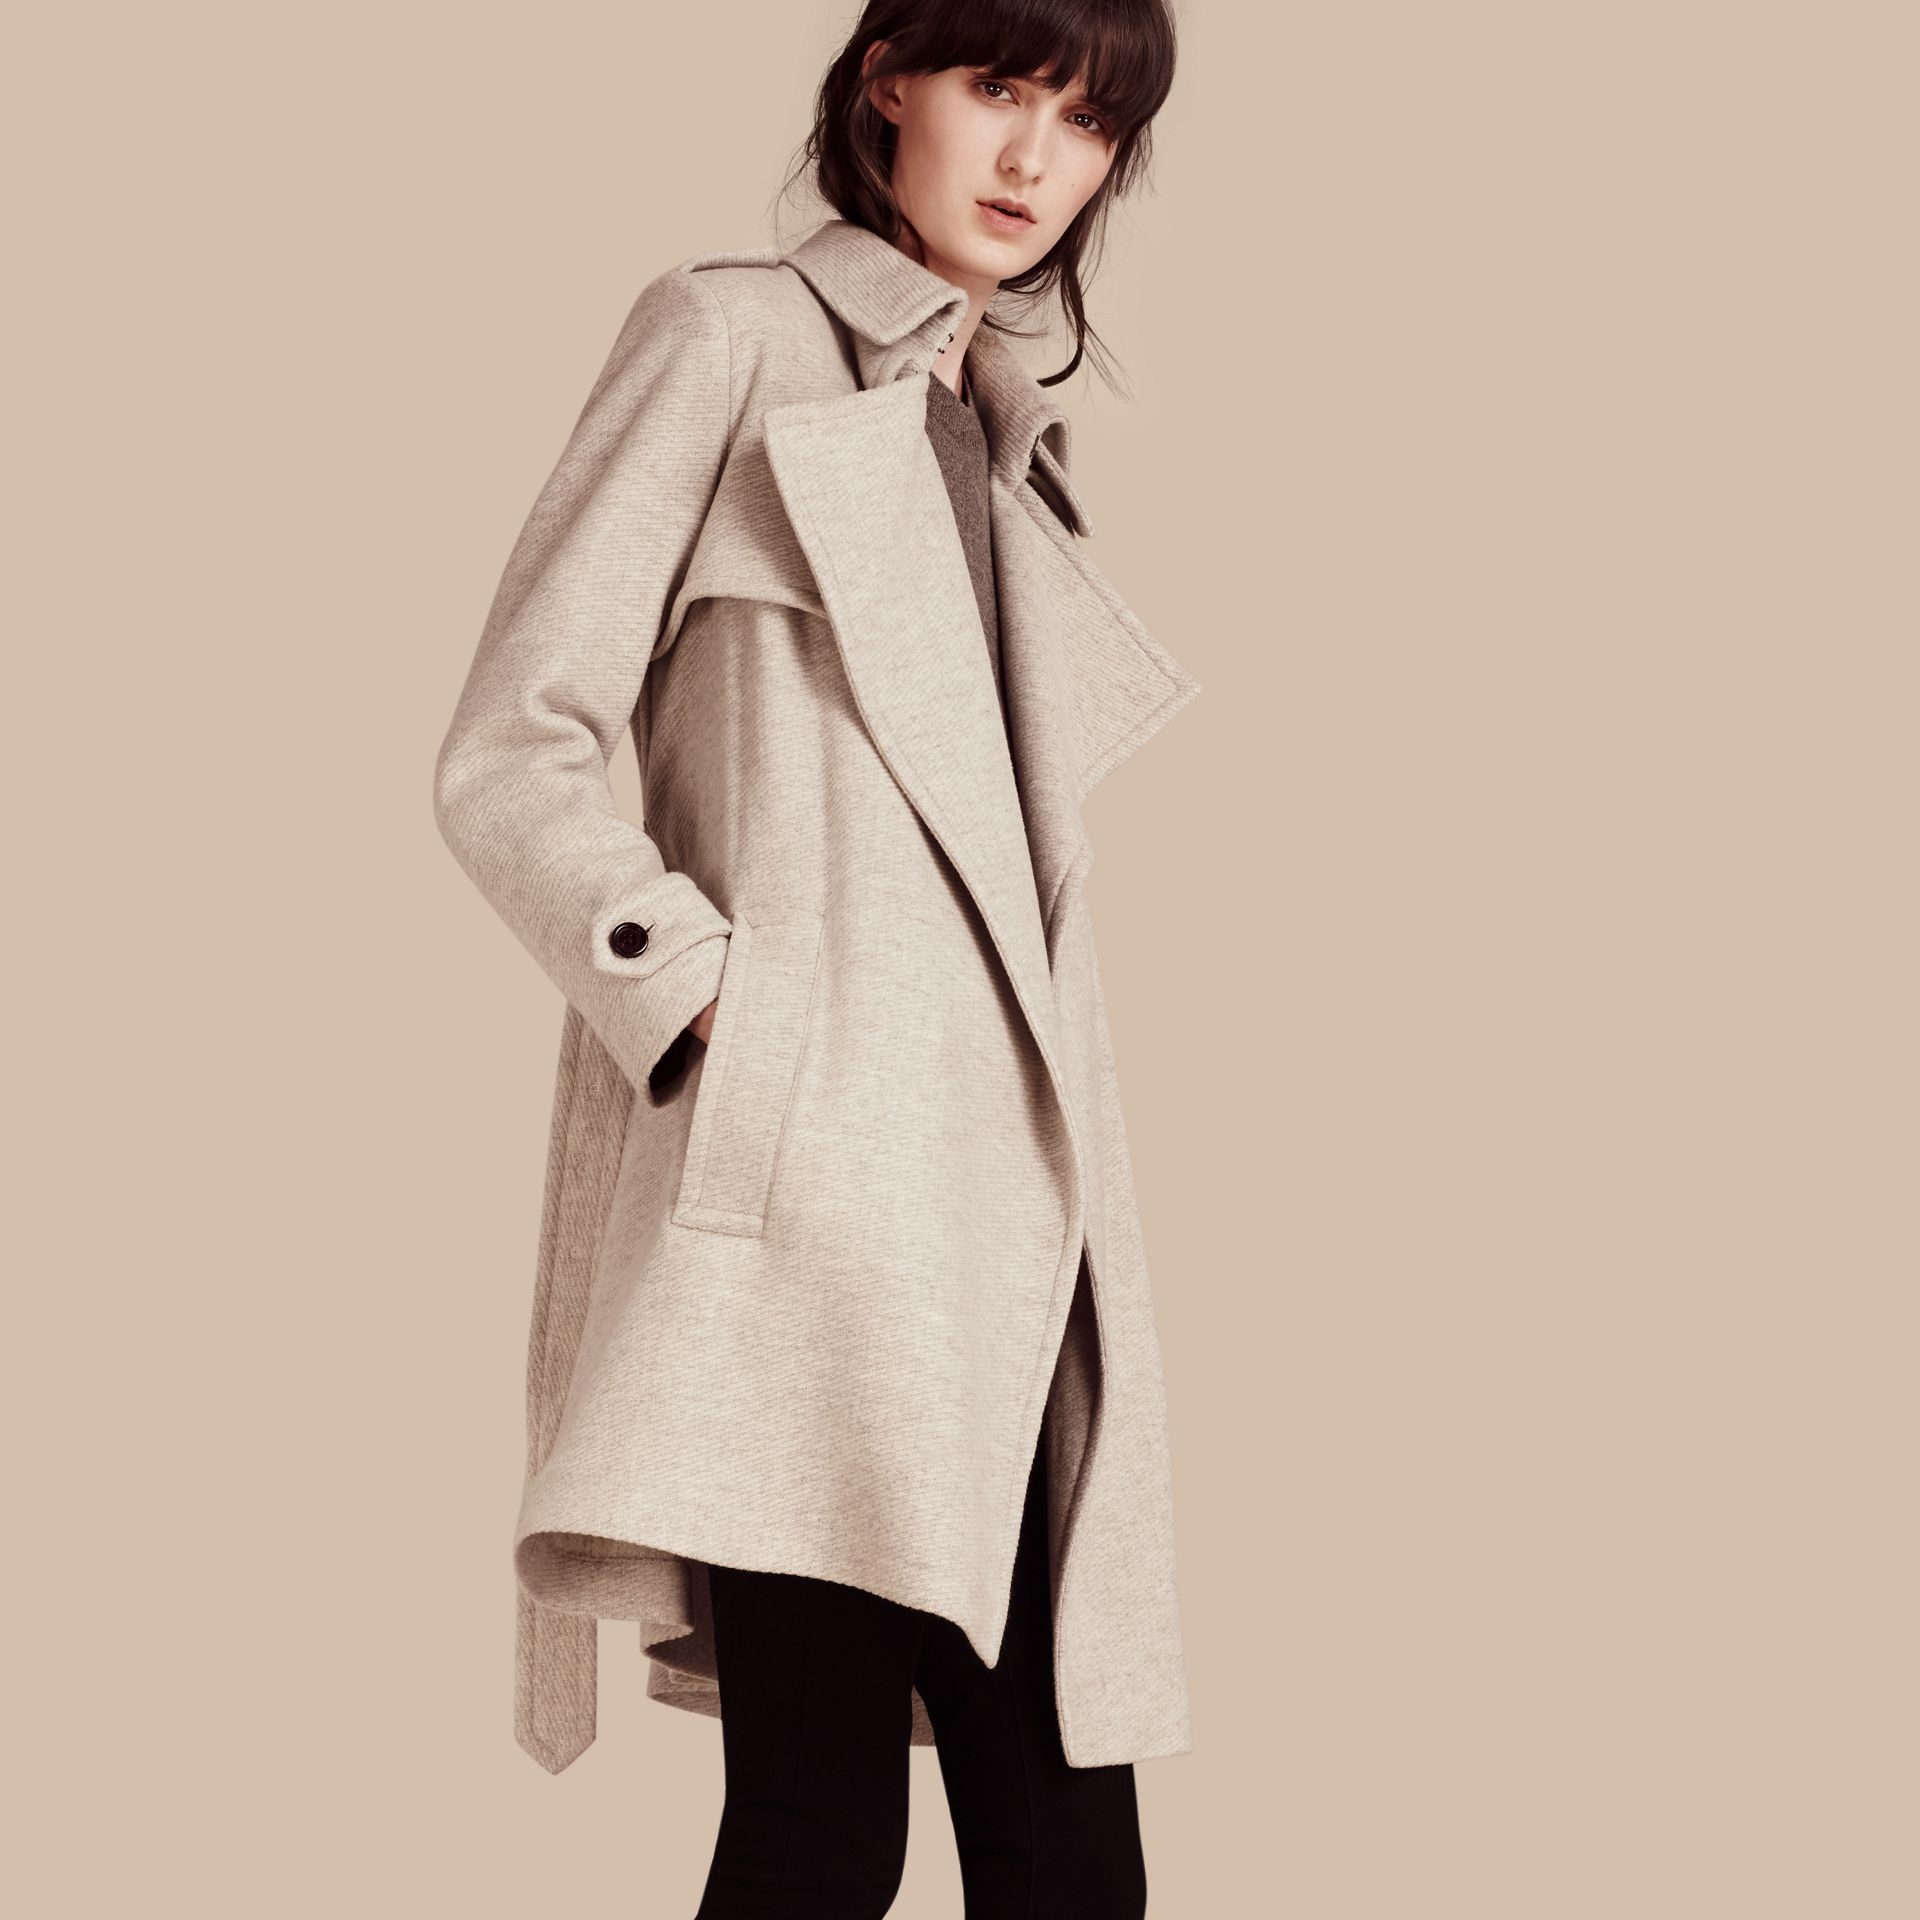 Blanc/gris Trench-coat portefeuille en cachemire - photo de la galerie 1